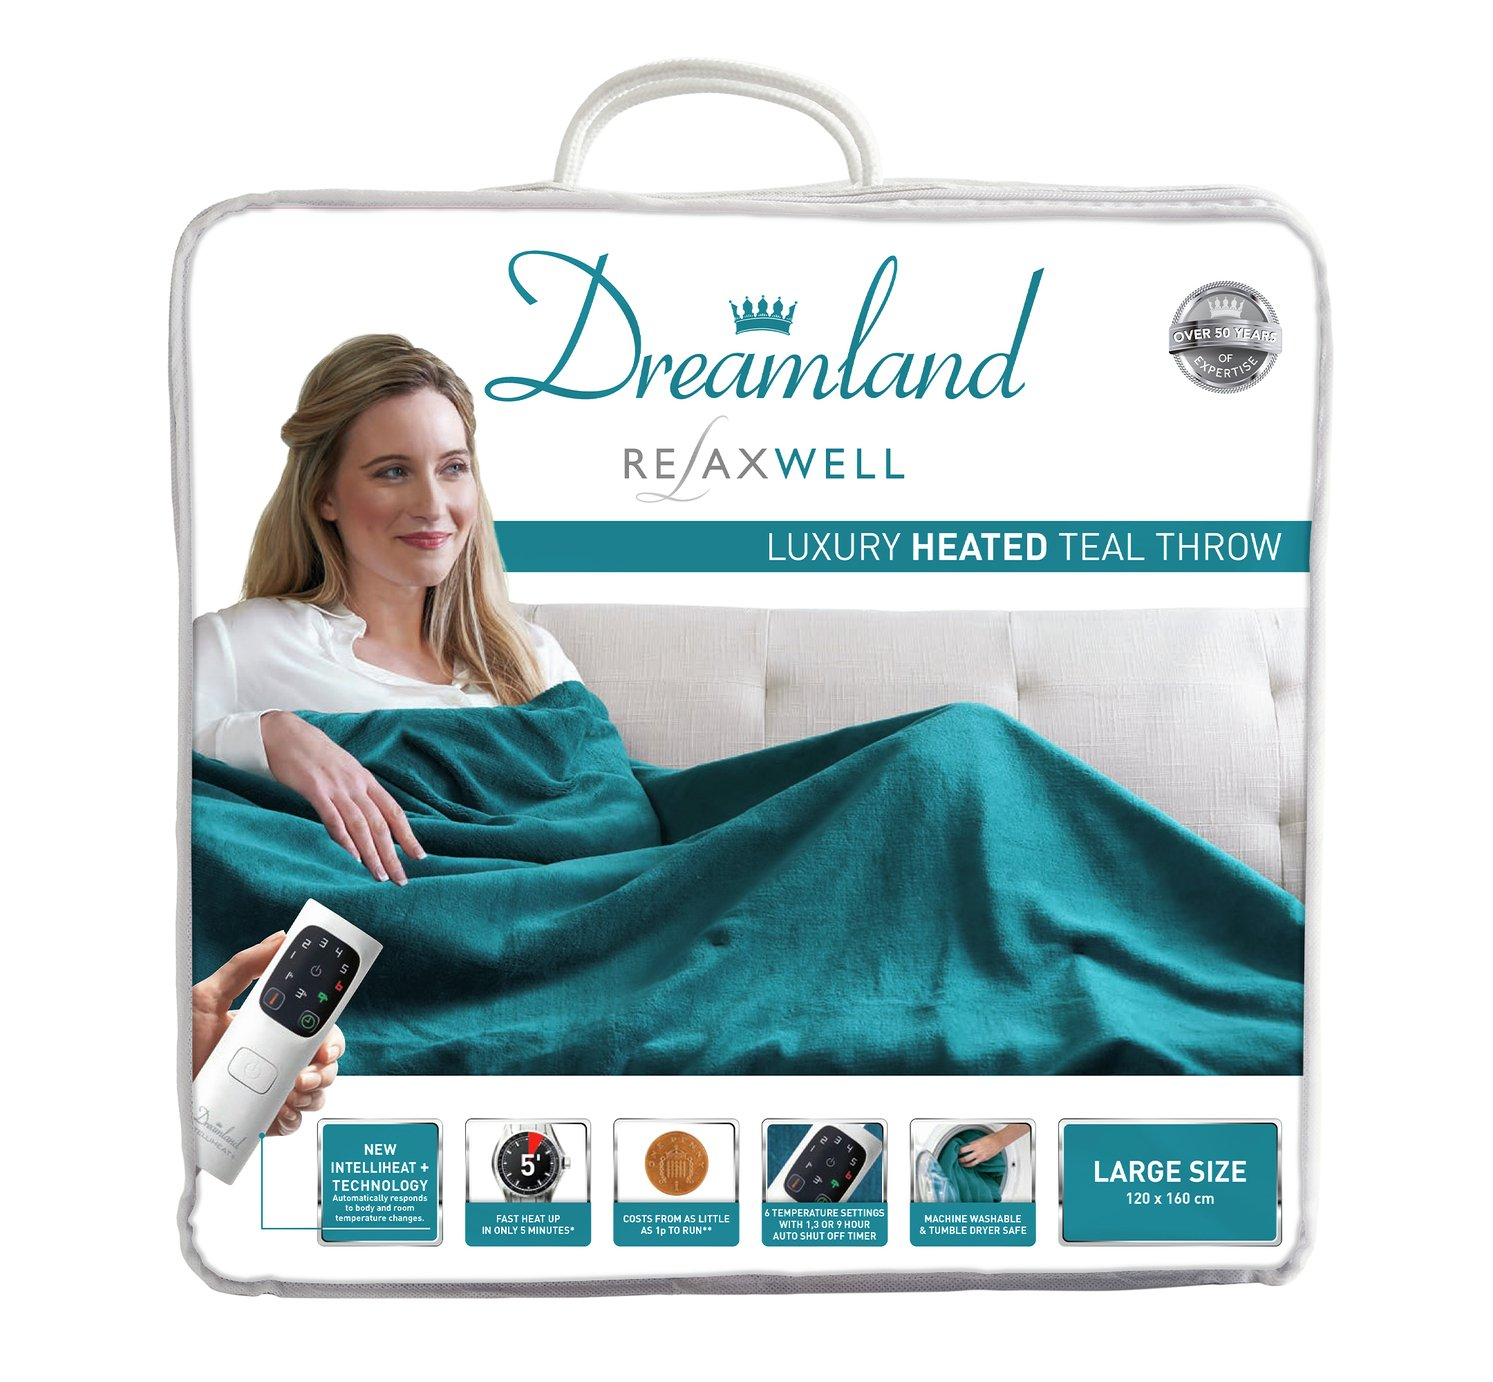 Relaxwell by Dreamland Heated Throw - Teal